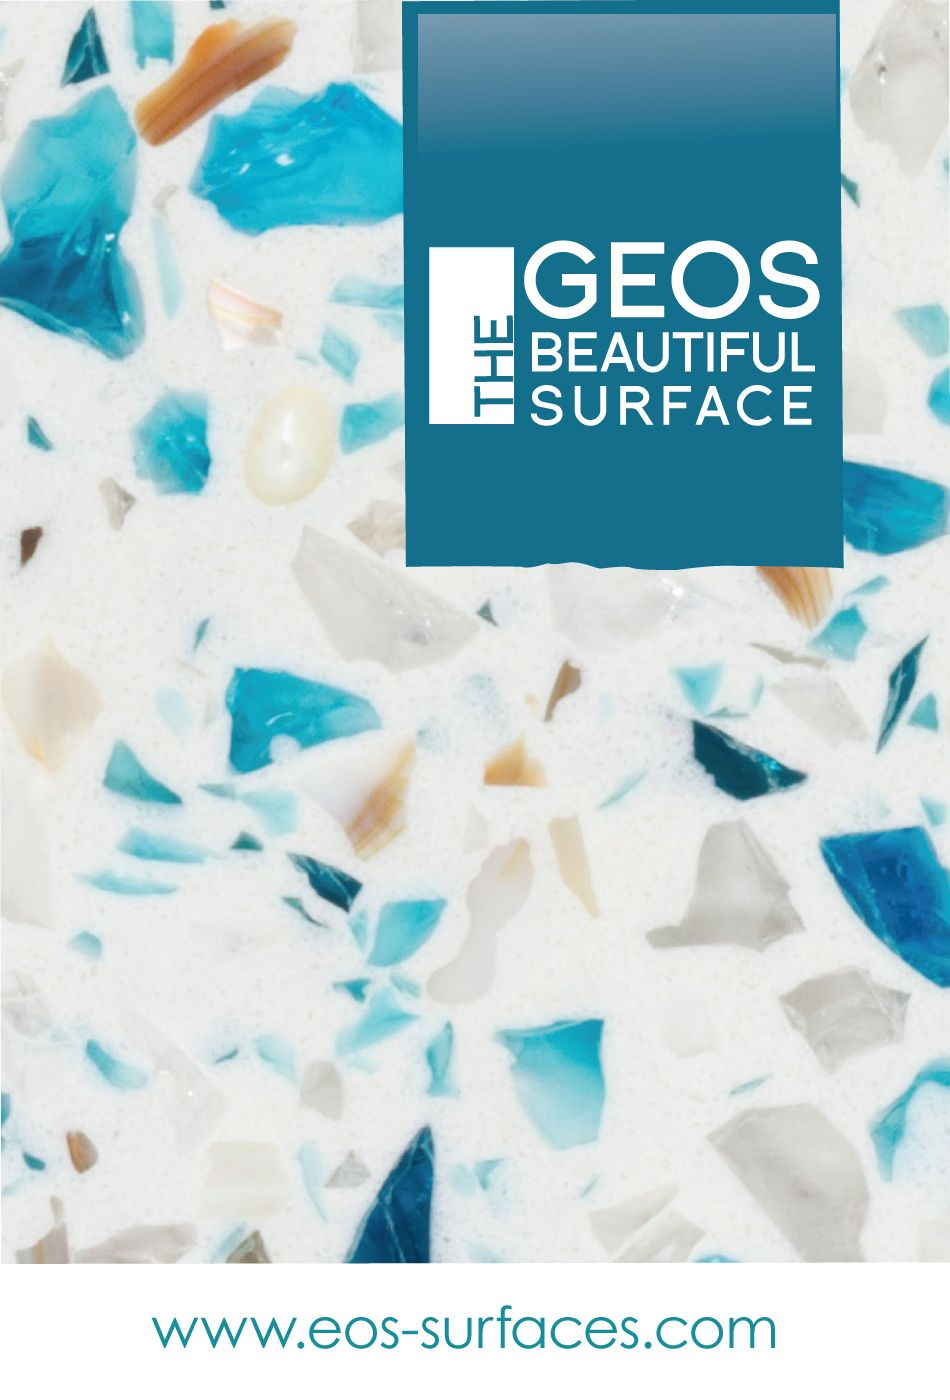 GEOS Recycled Glass Surfaces are BEAUTIFUL! Visually stunning with a ...